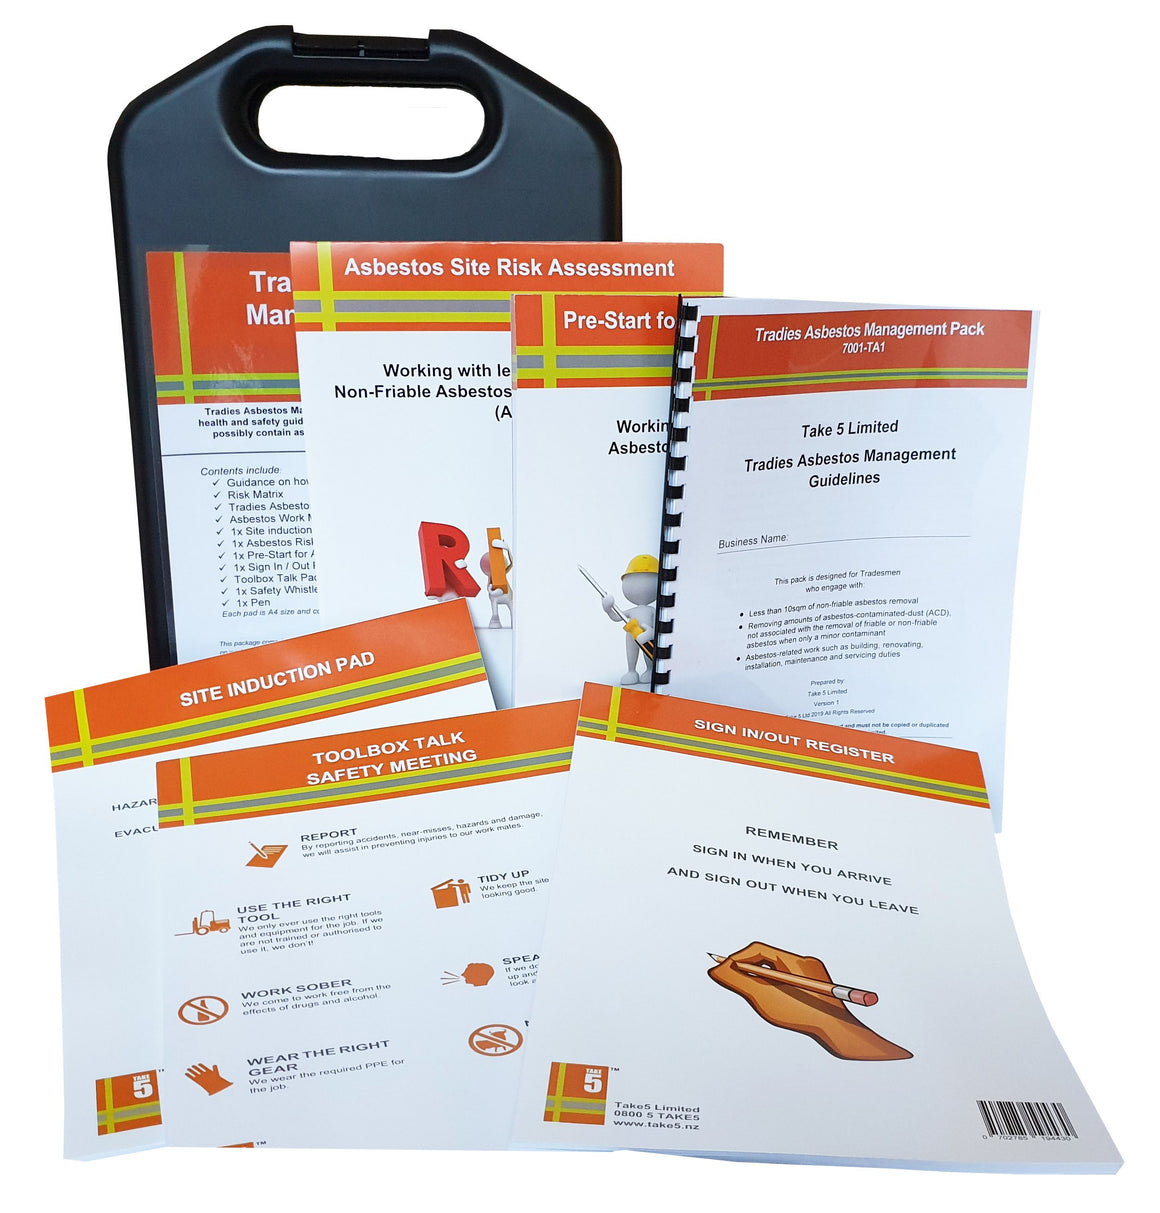 Tradie Asbestos Management Pack